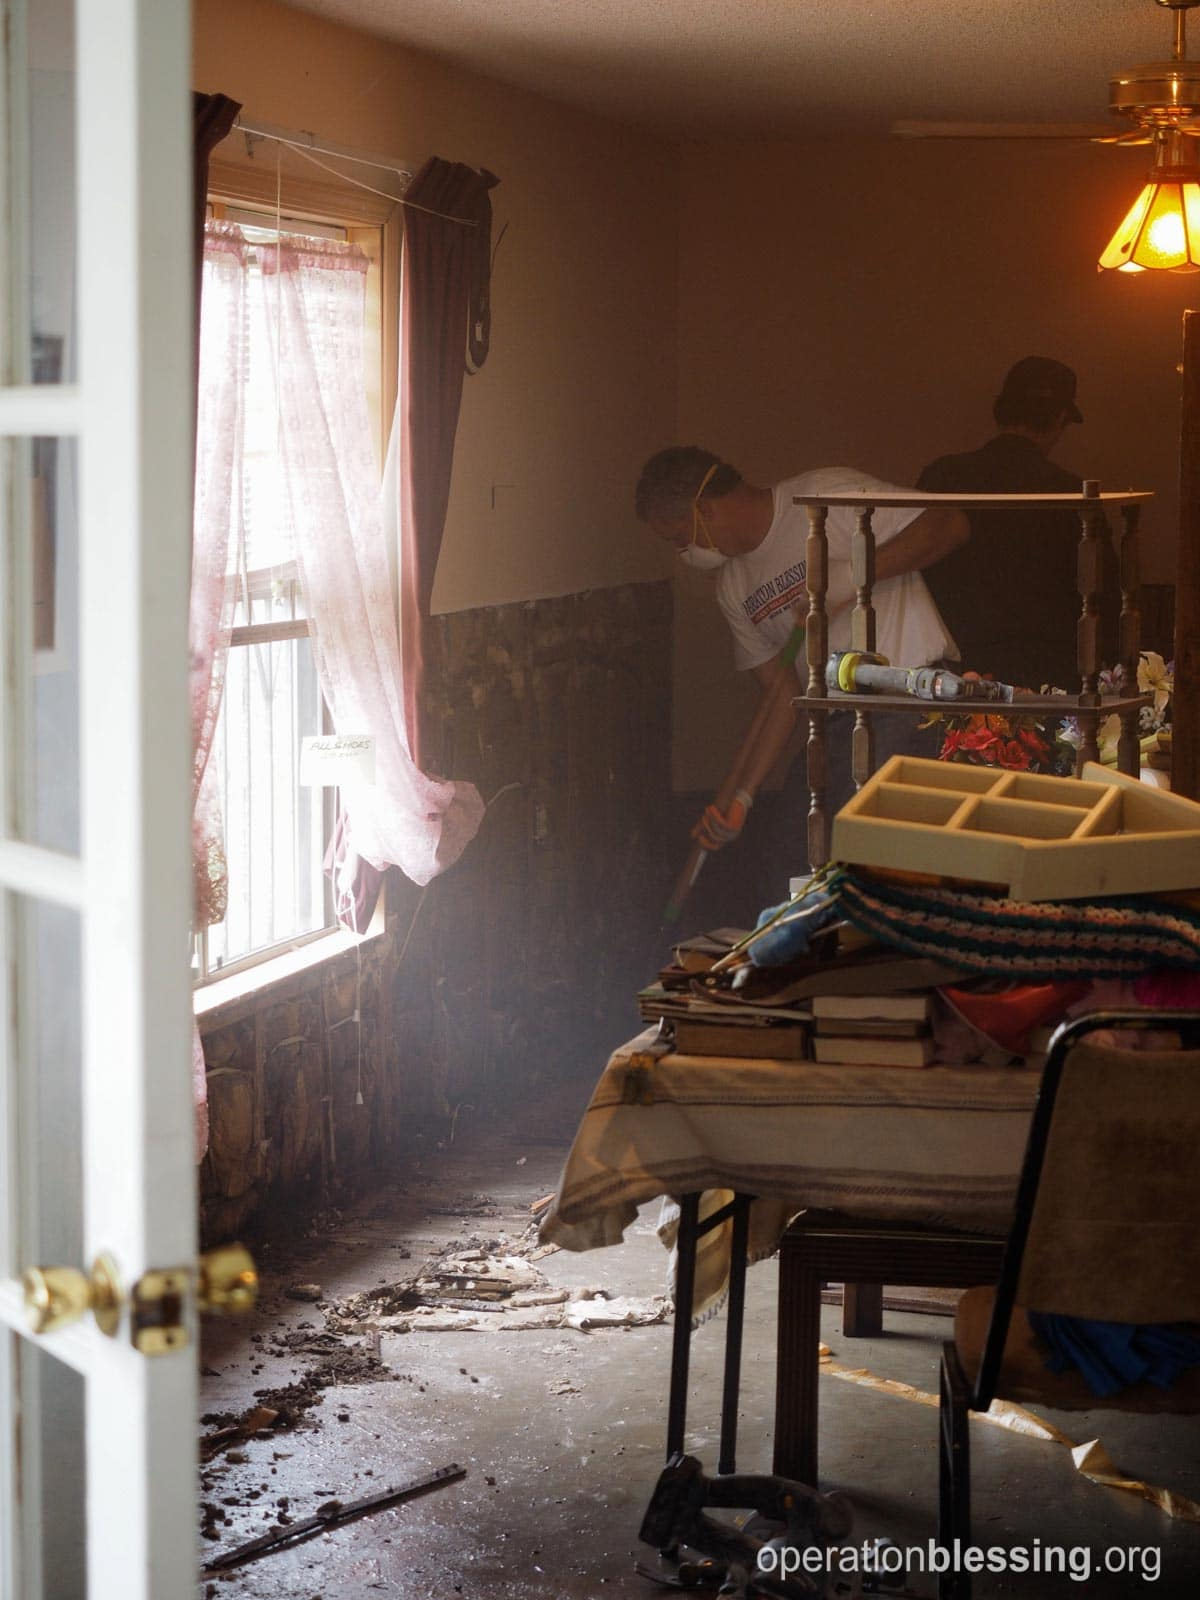 Volunteers work to gut Carol's home and business.